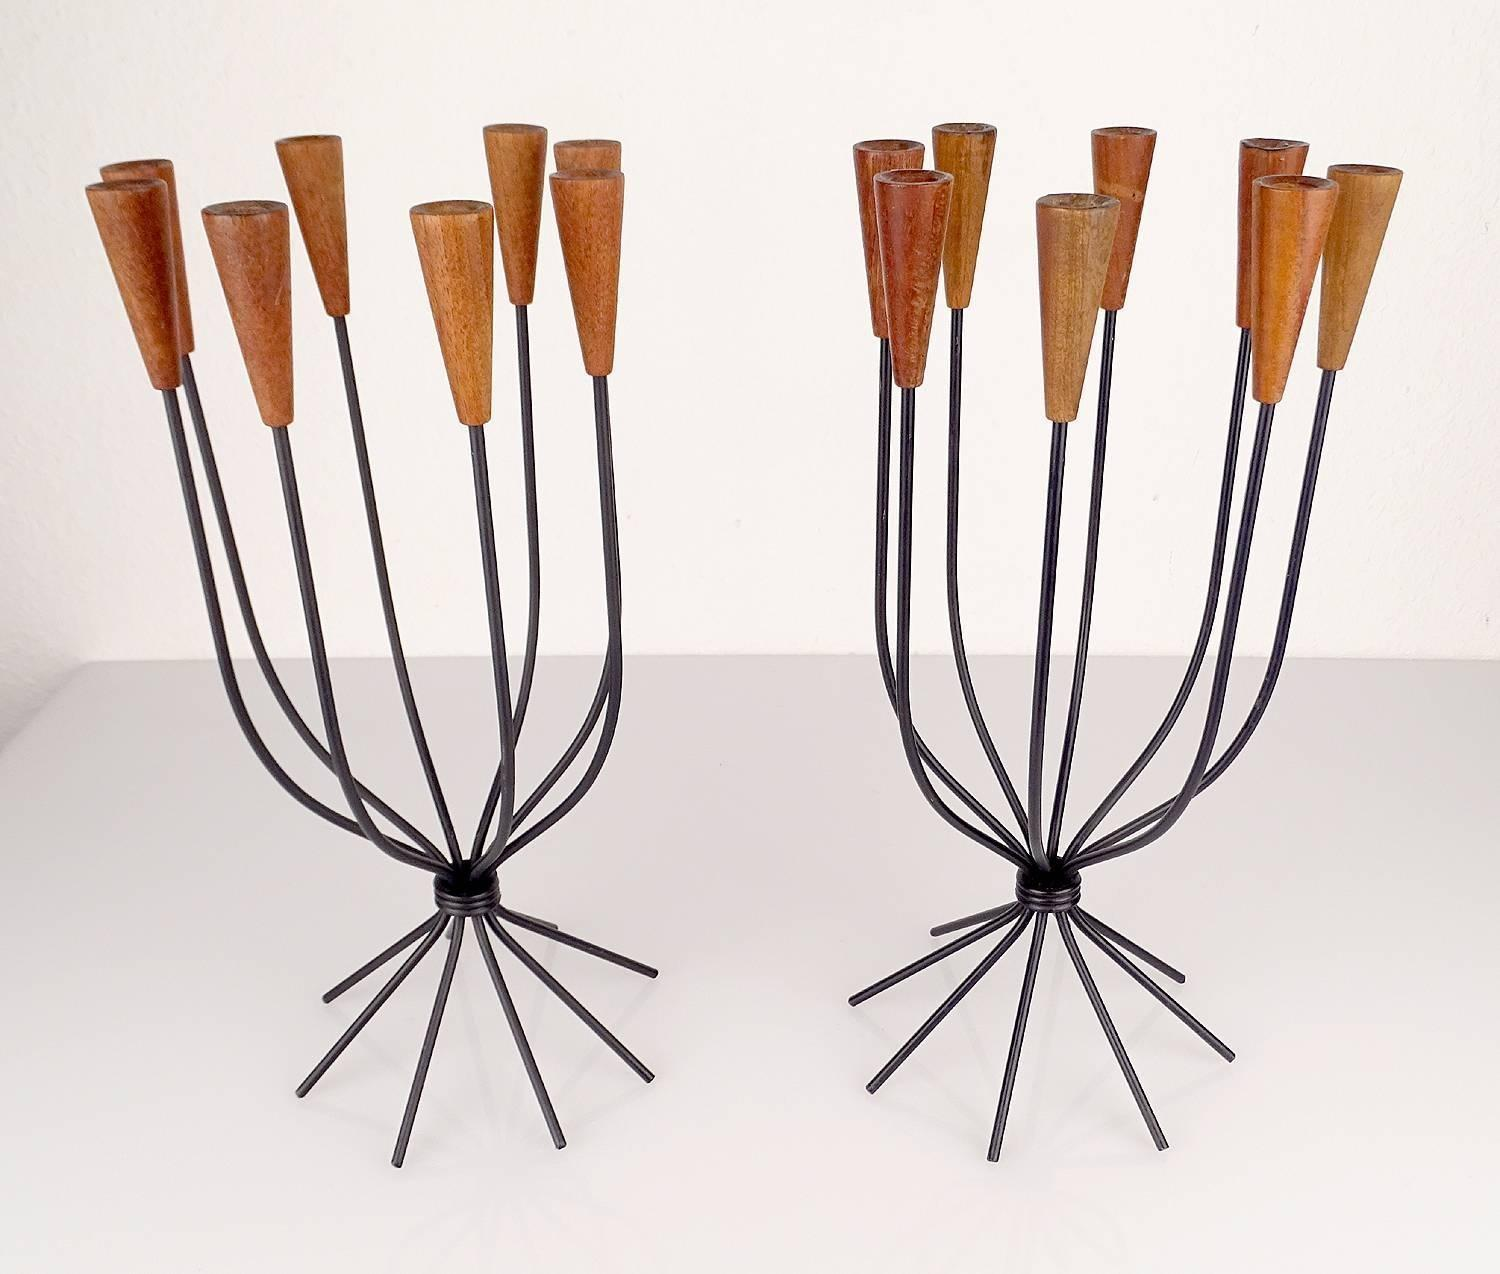 Pair Sculptural Danish String Design Teak Candlesticks